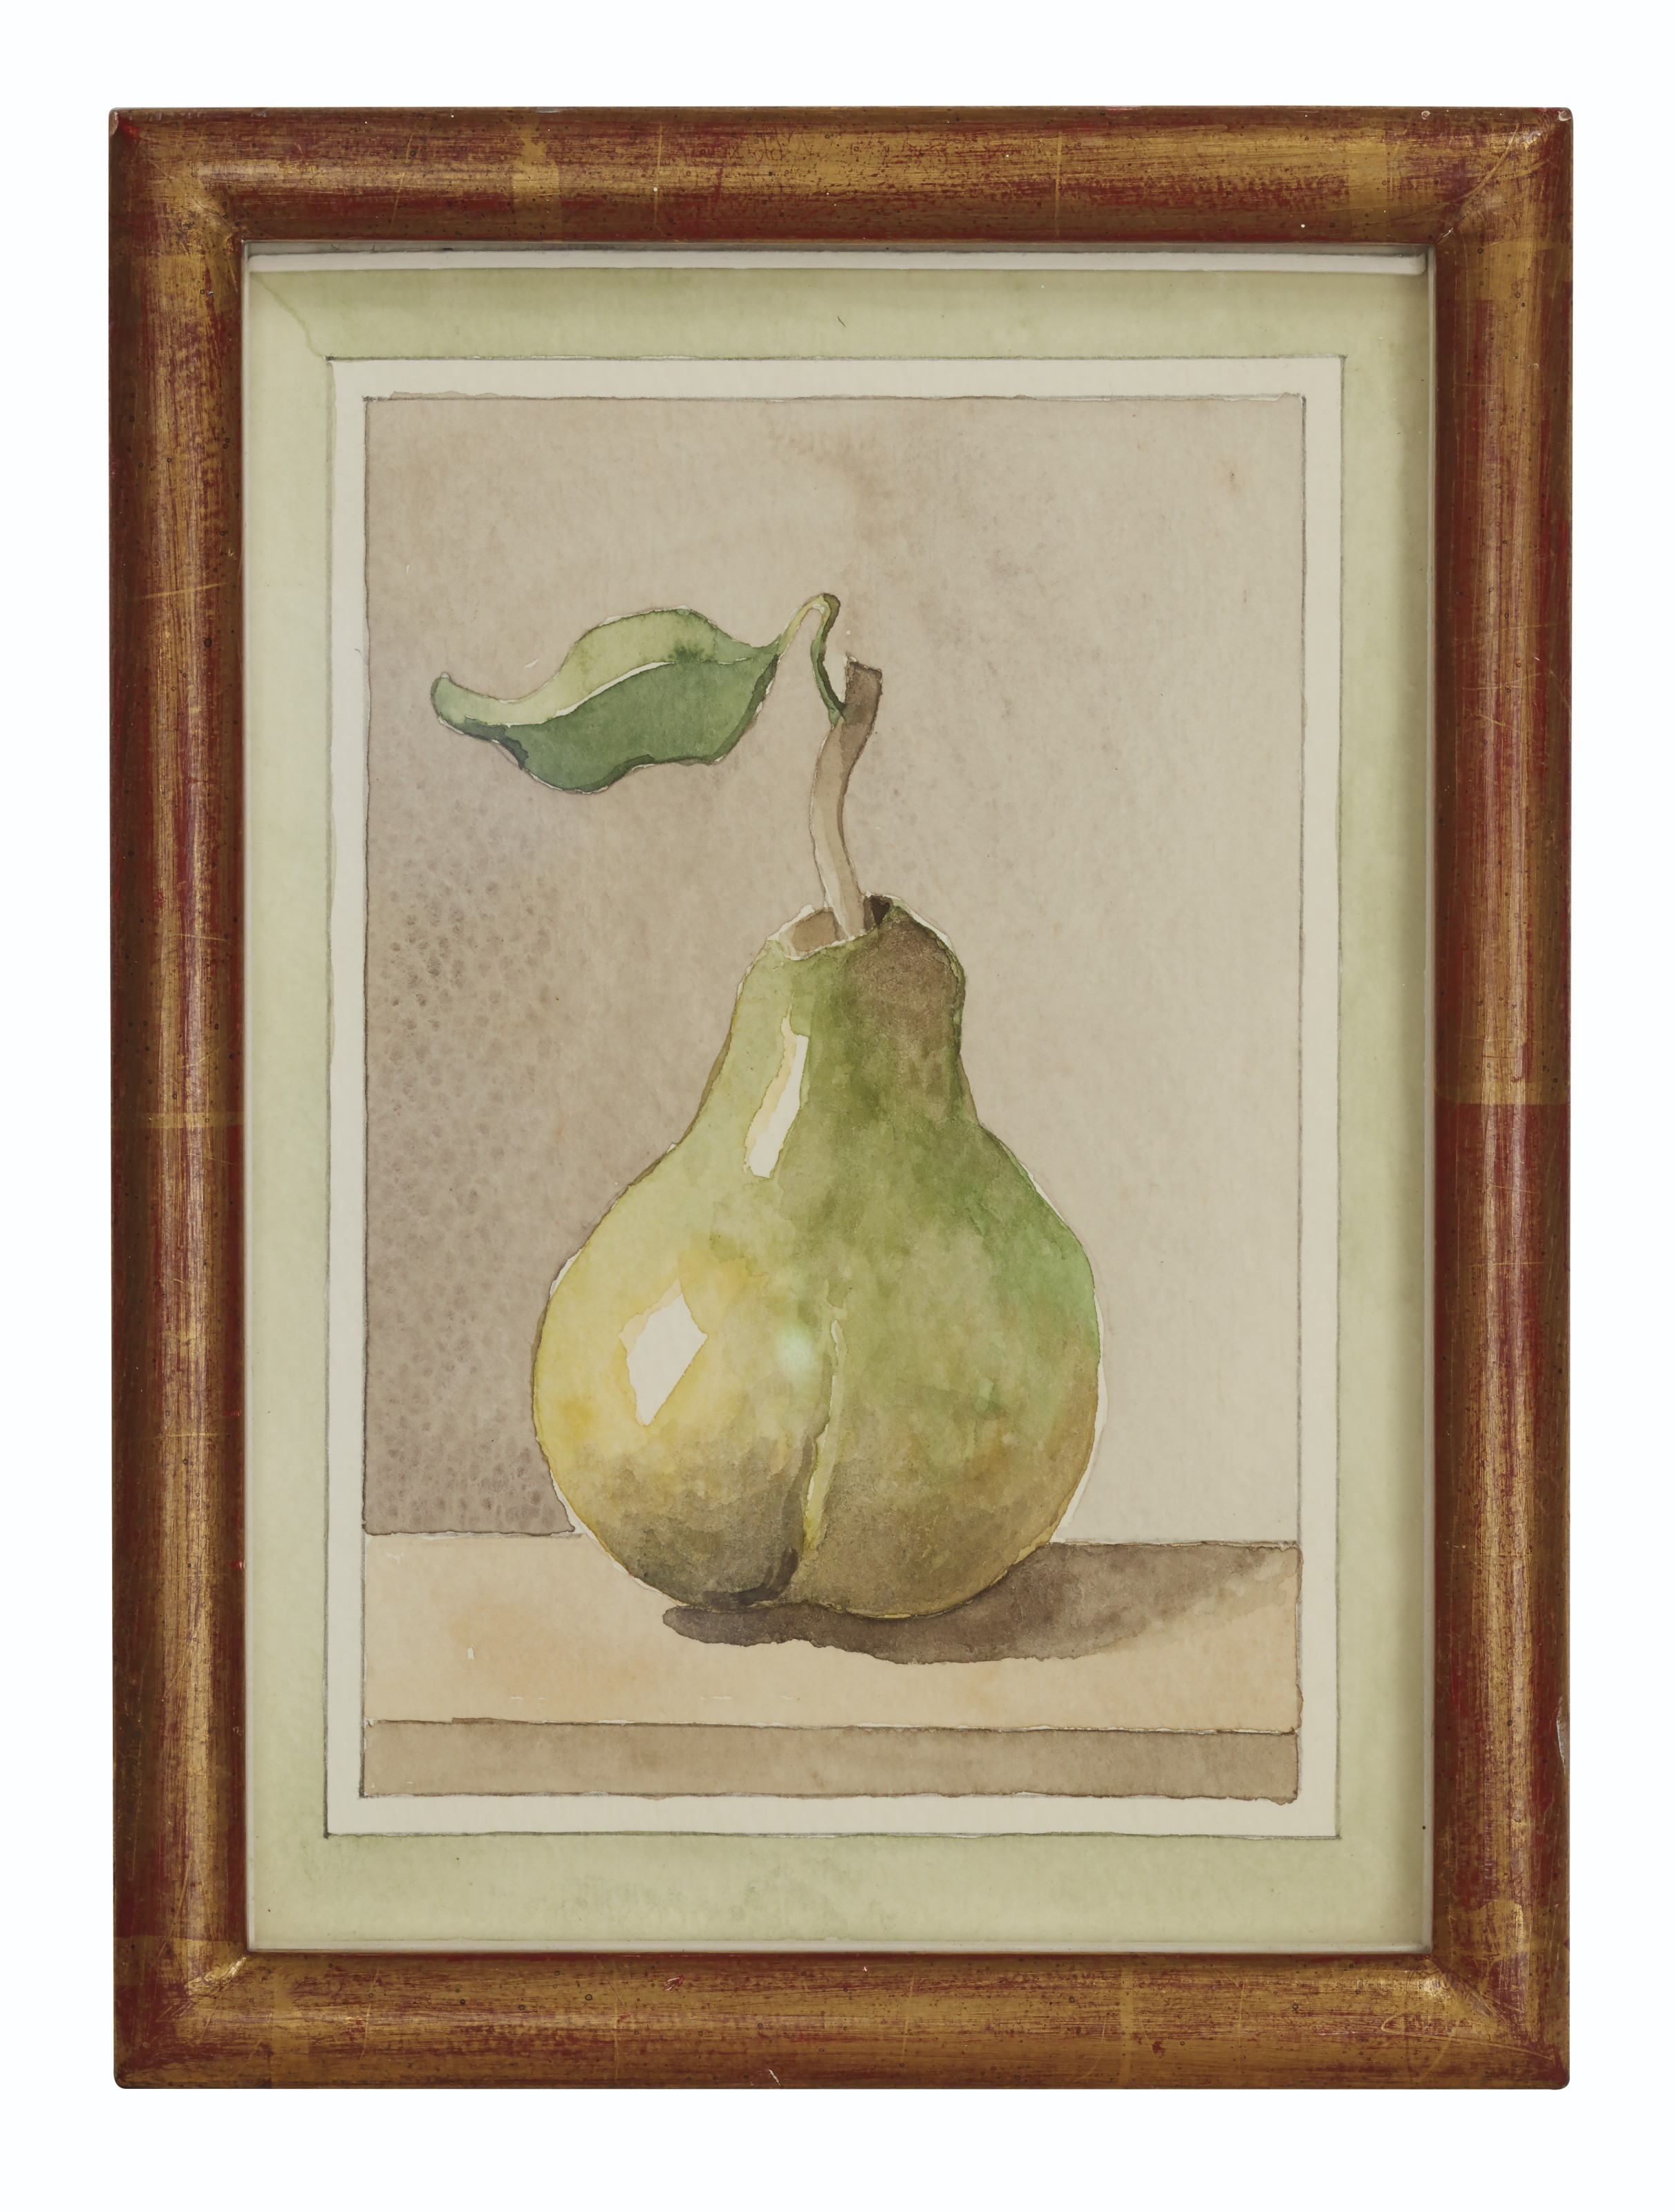 2019_NYR_17322_1094_000(mark_hampton_study_of_a_pear).jpg